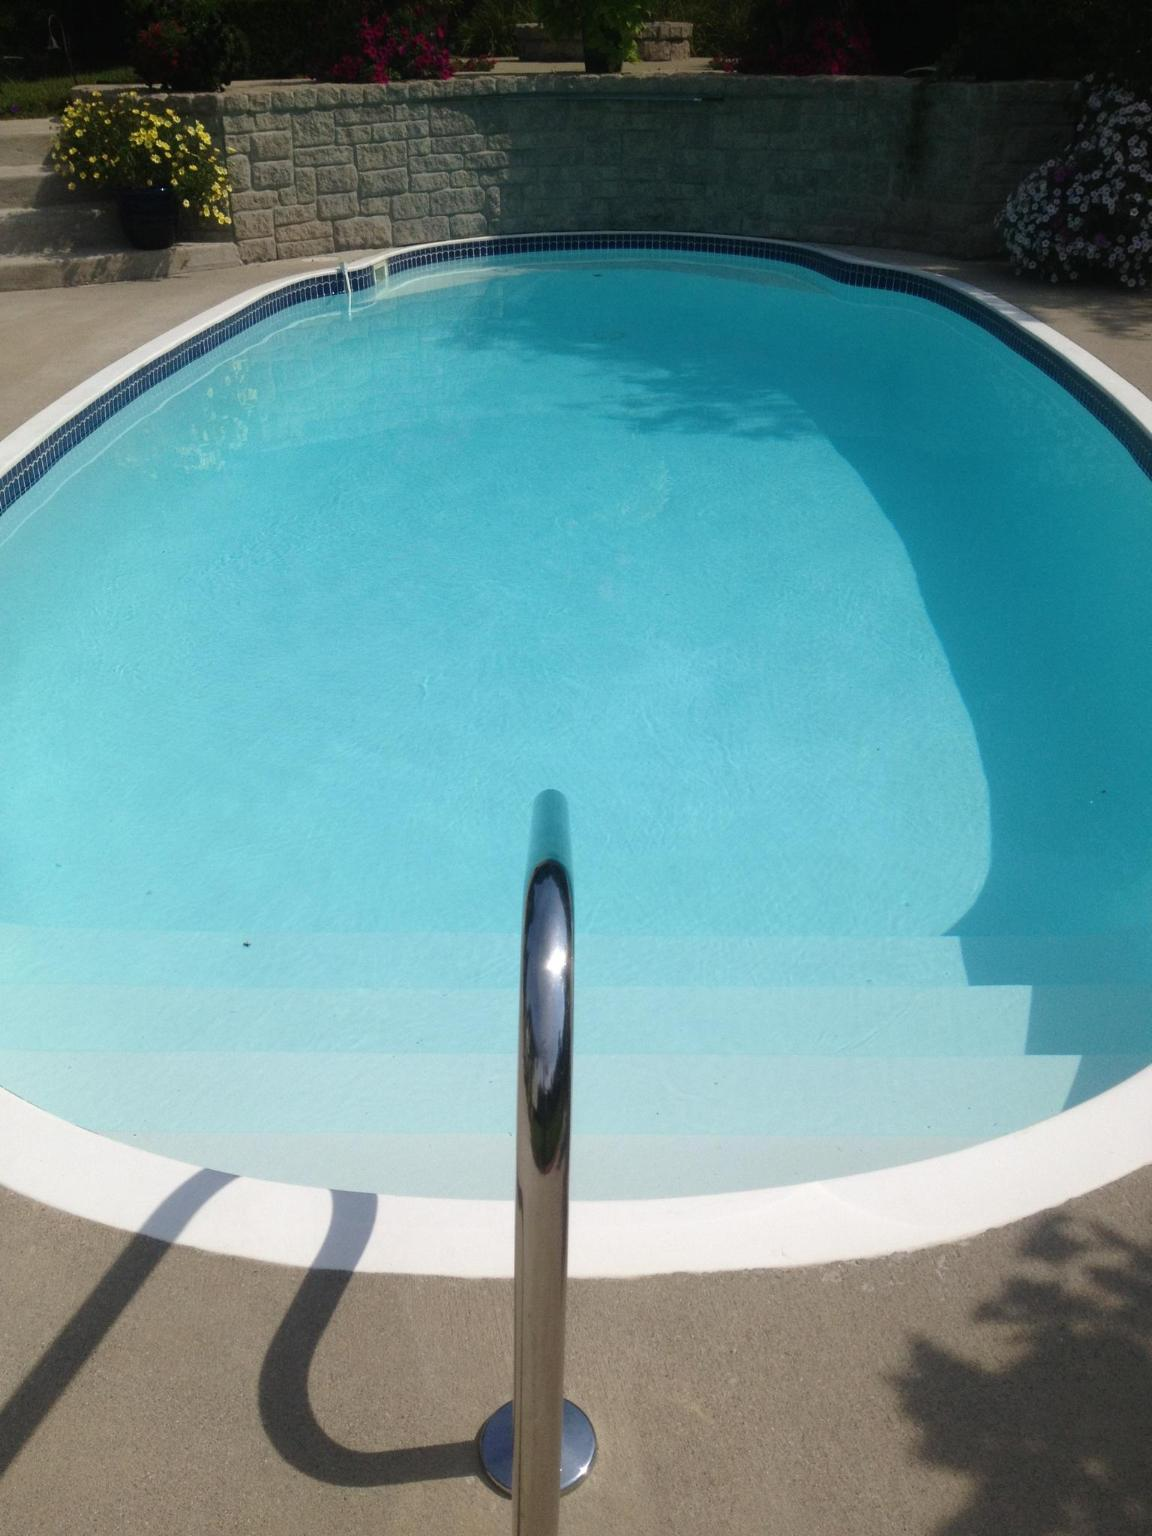 9 Popular Pool Surfaces For Gunite Concrete Fiberglass Vinyl Swimming Pools Ask The Pool Guy